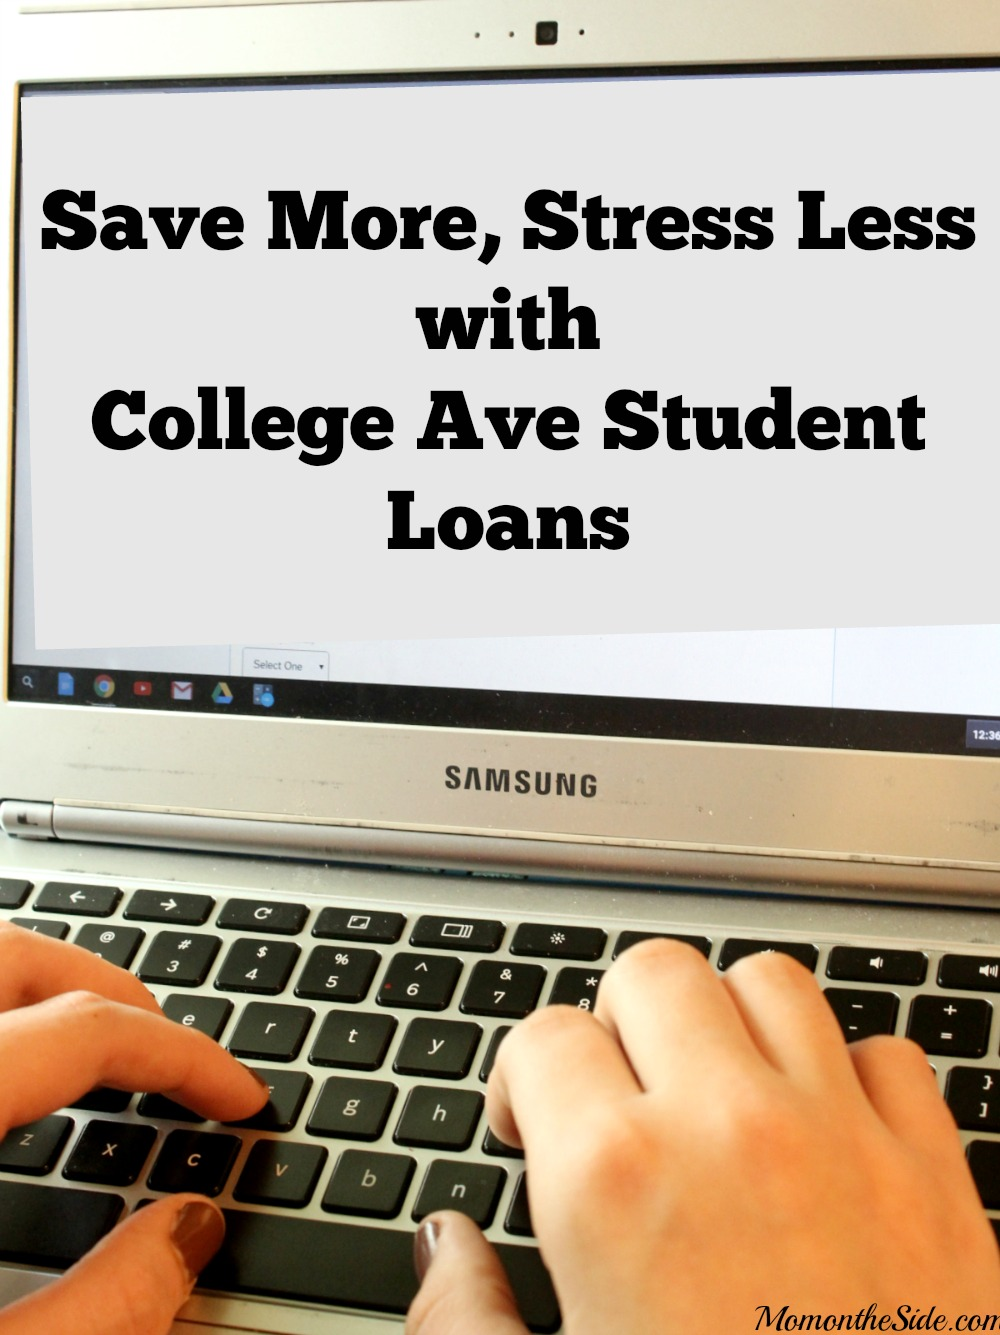 Save More, Stress Less with College Ave Student Loans